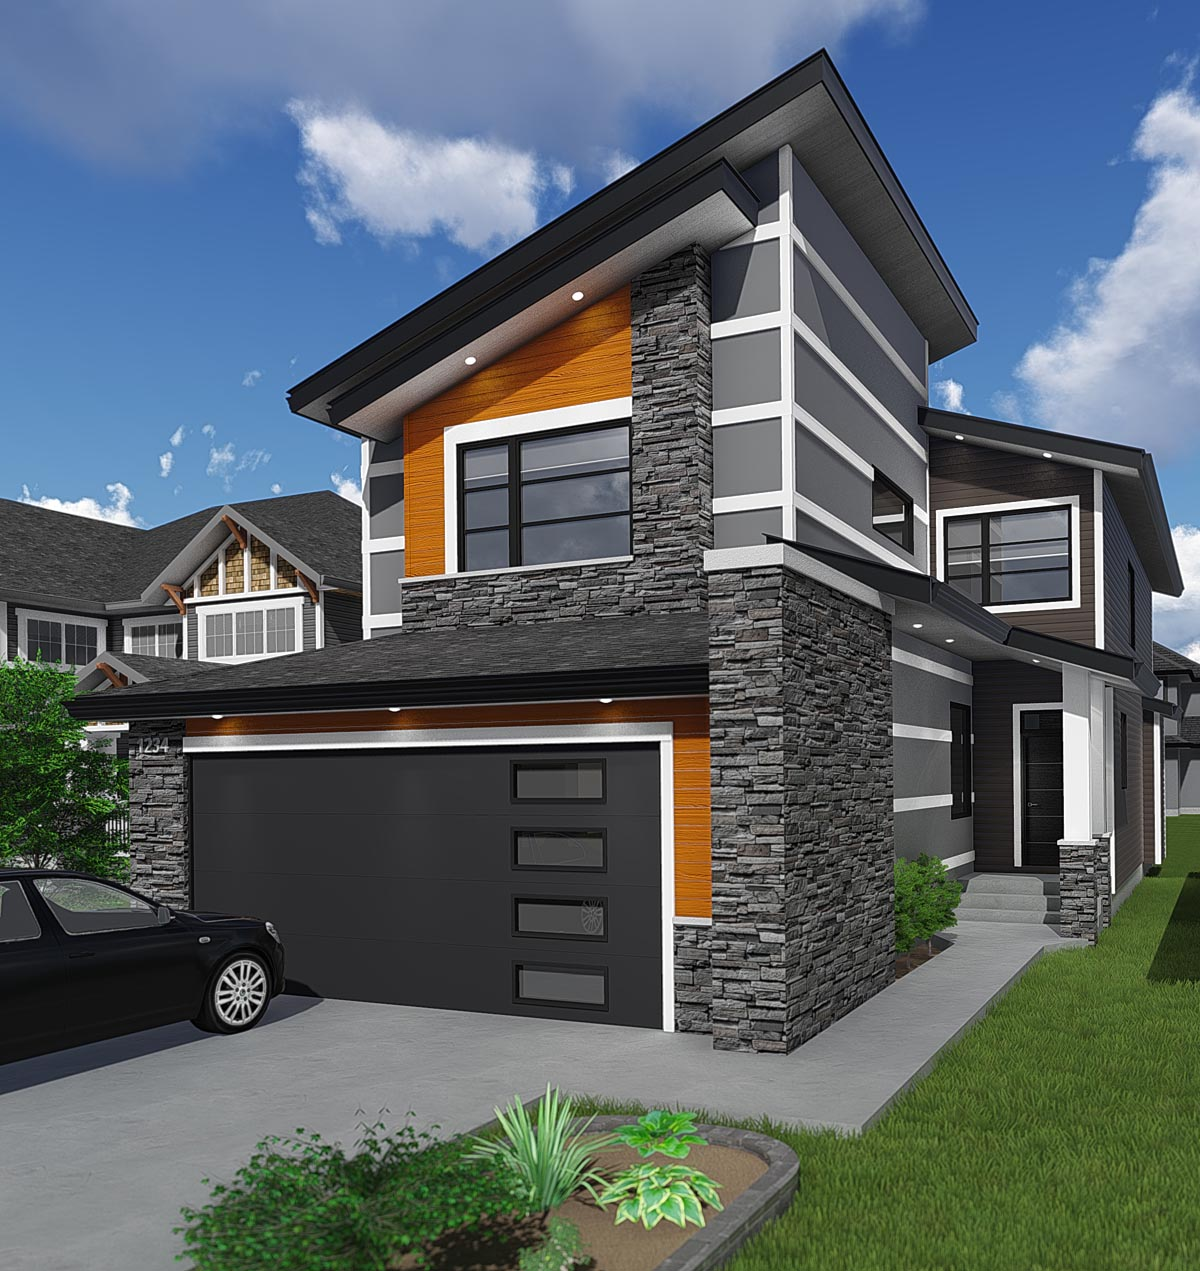 Modern Family Home Designs: House Plan 81186 At FamilyHomePlans.com